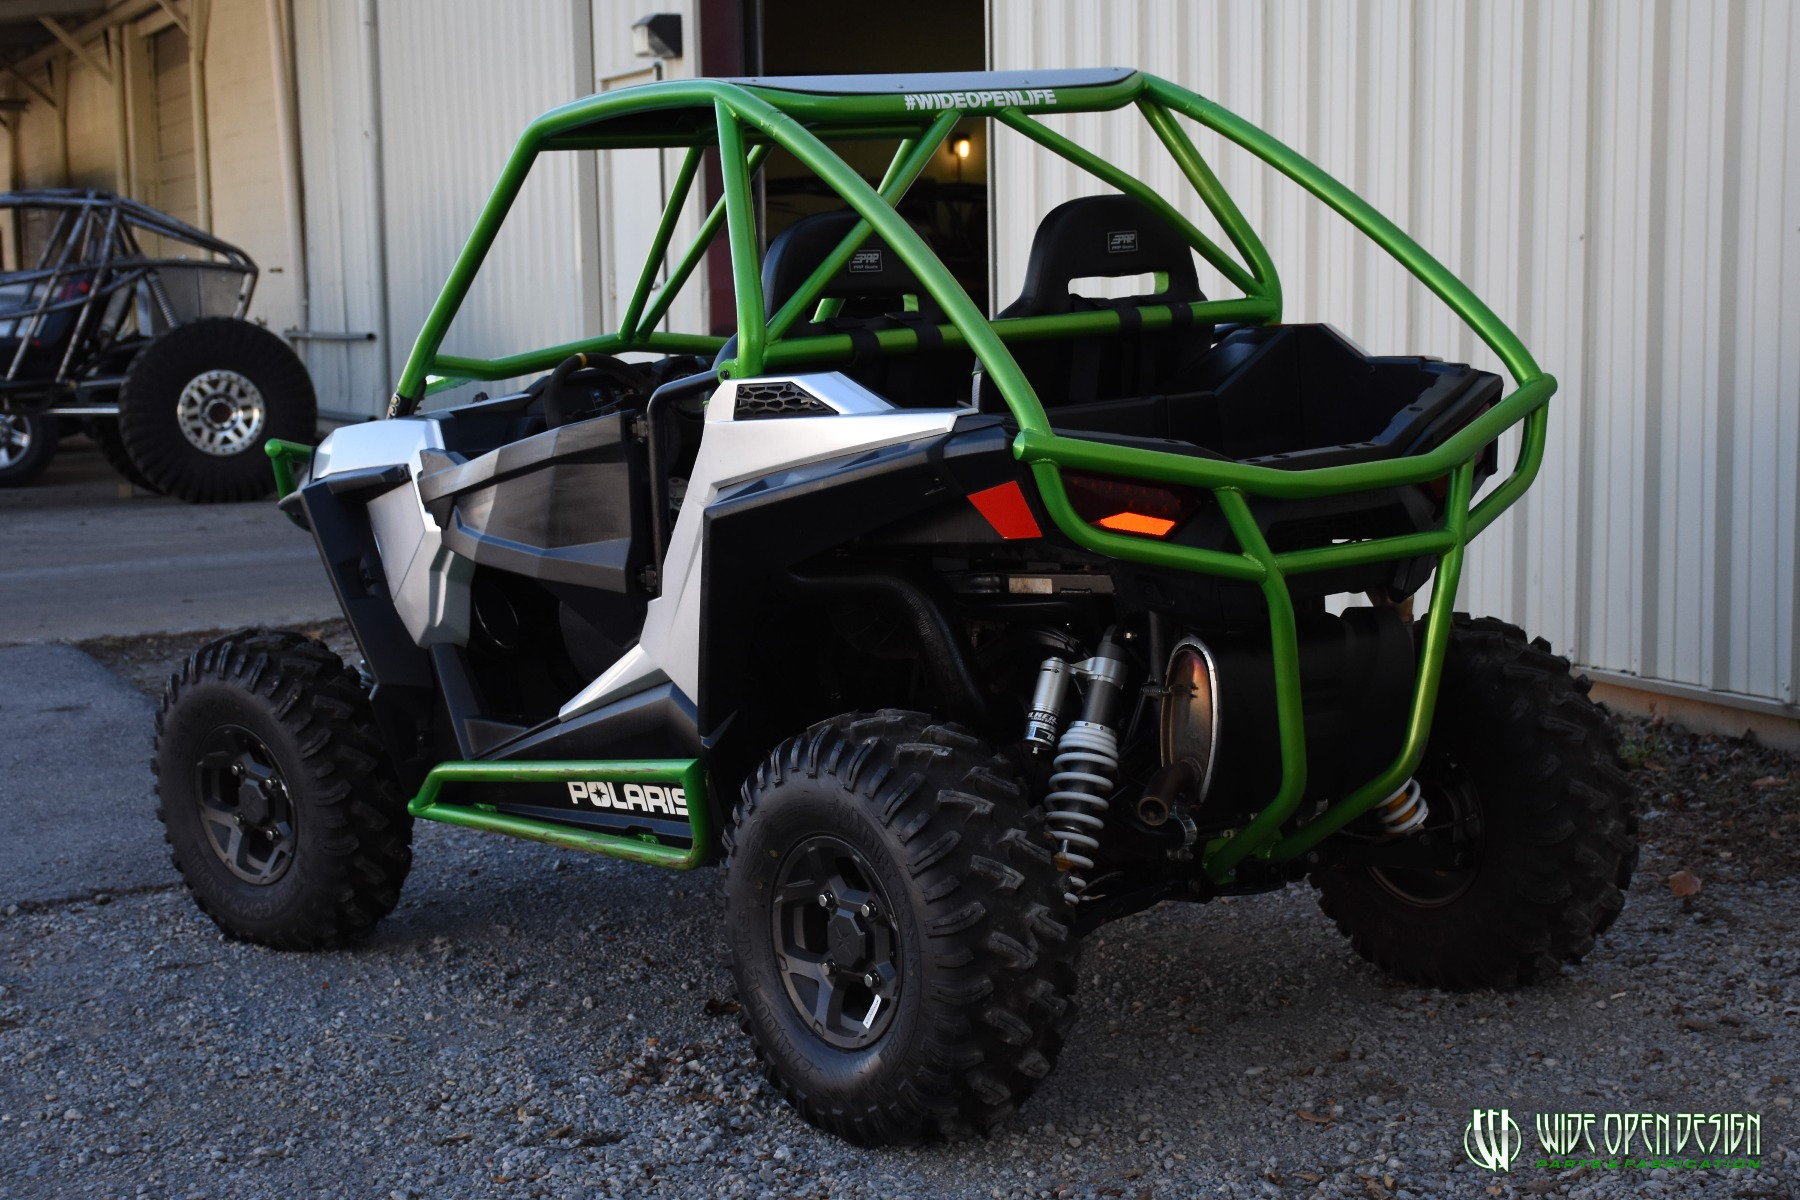 Jason's 1000s RZR with Wide Open Design Rolled Roof Cage, Front Bumper with Tie In, and Rocker Guards 30